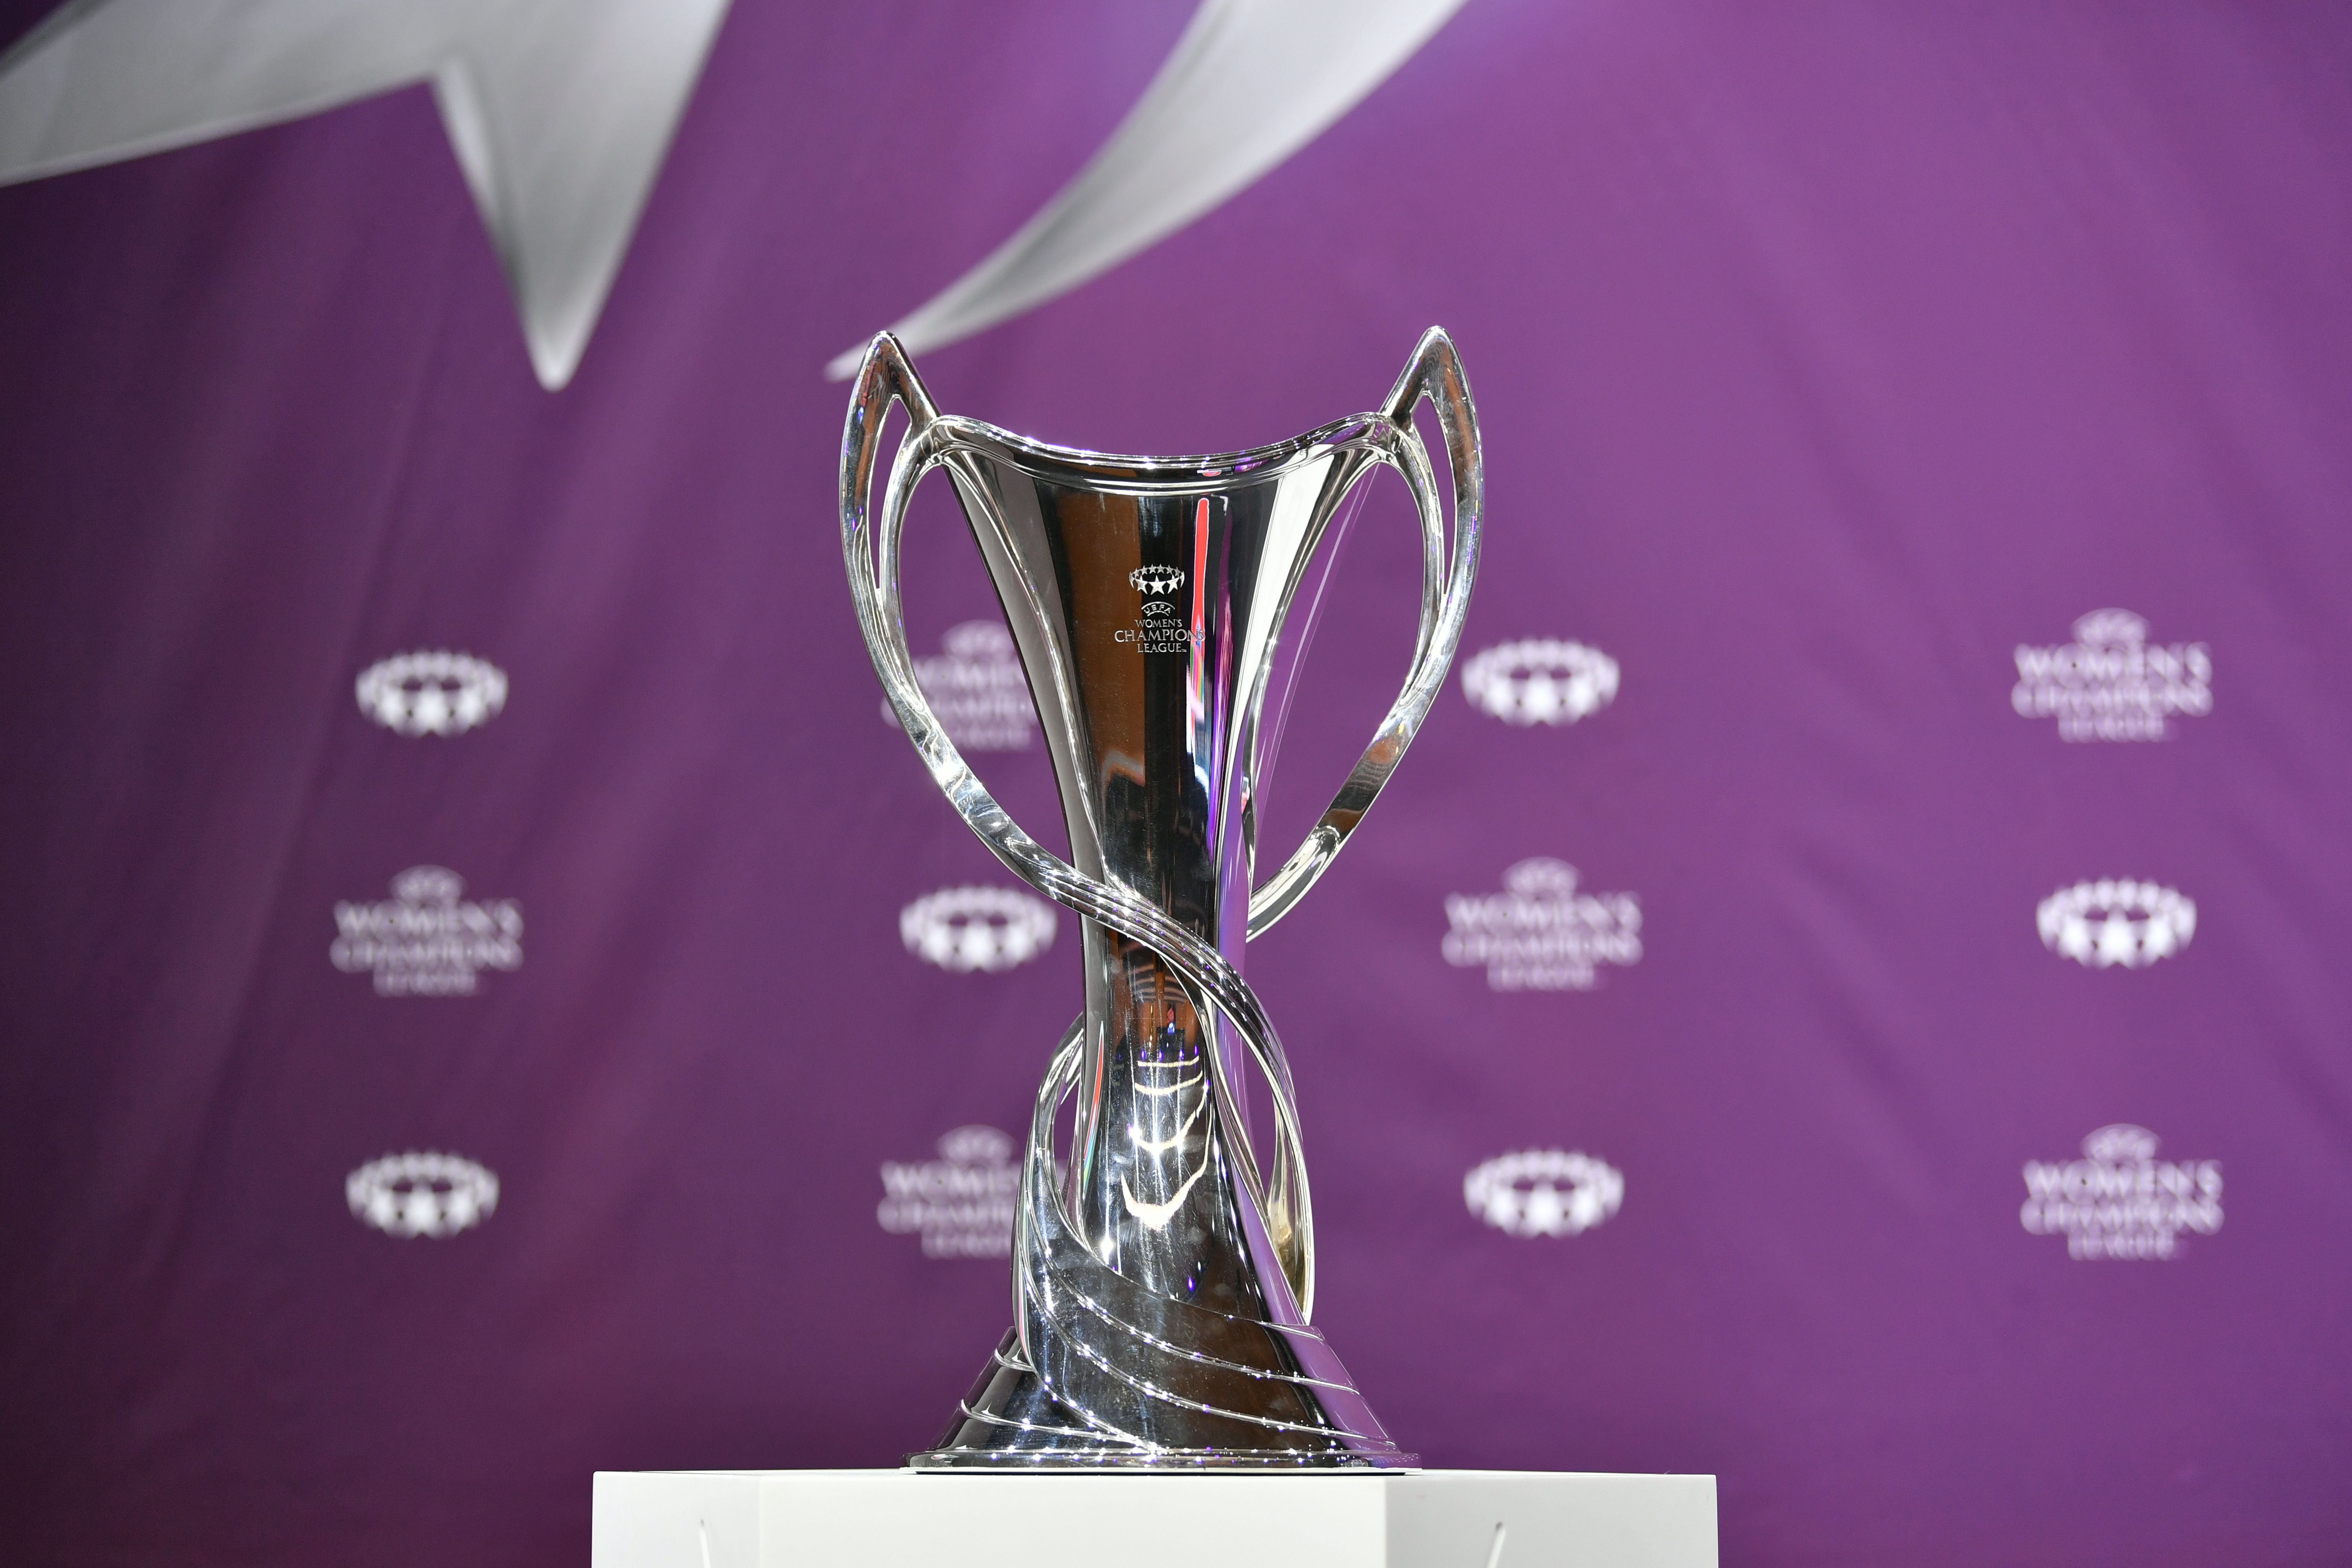 UEFA Women's Champions League 2020/21 Round of 16 Draw